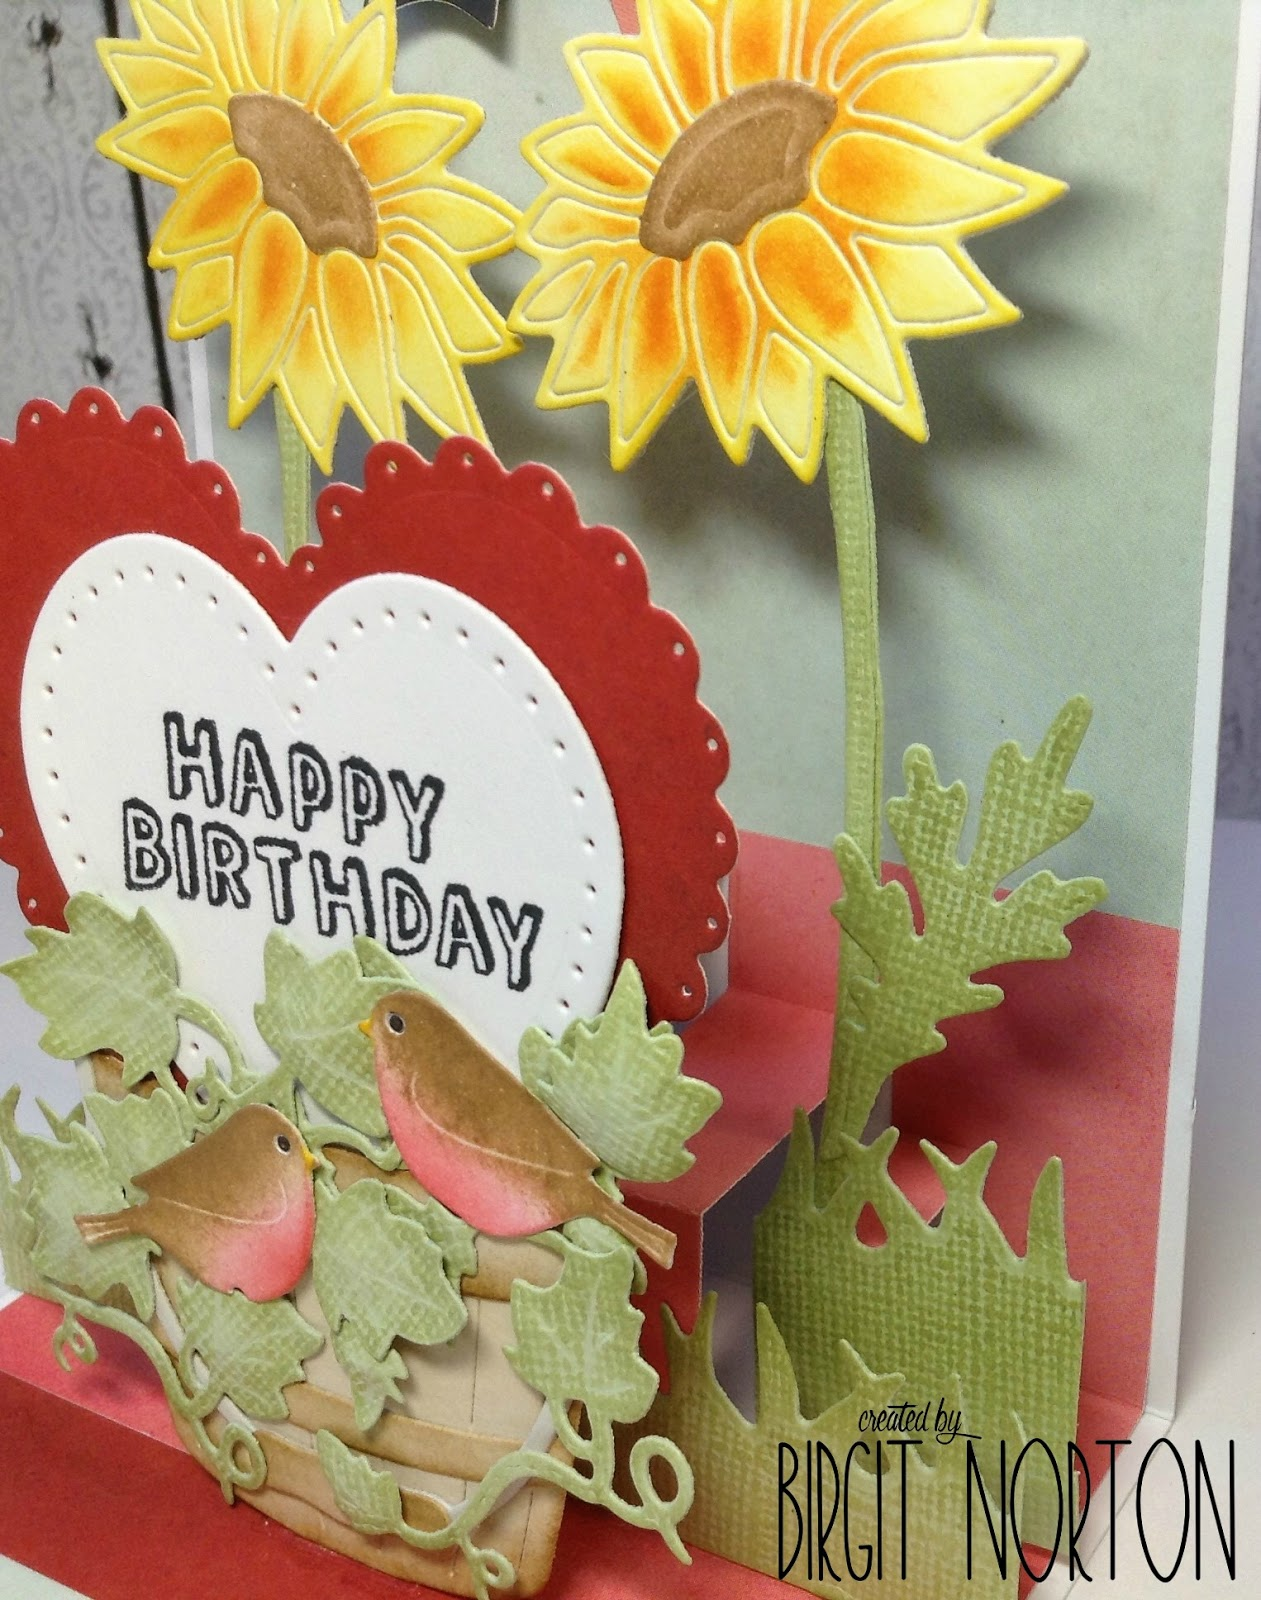 birthday card extra postage required ; PopUpBirthday6